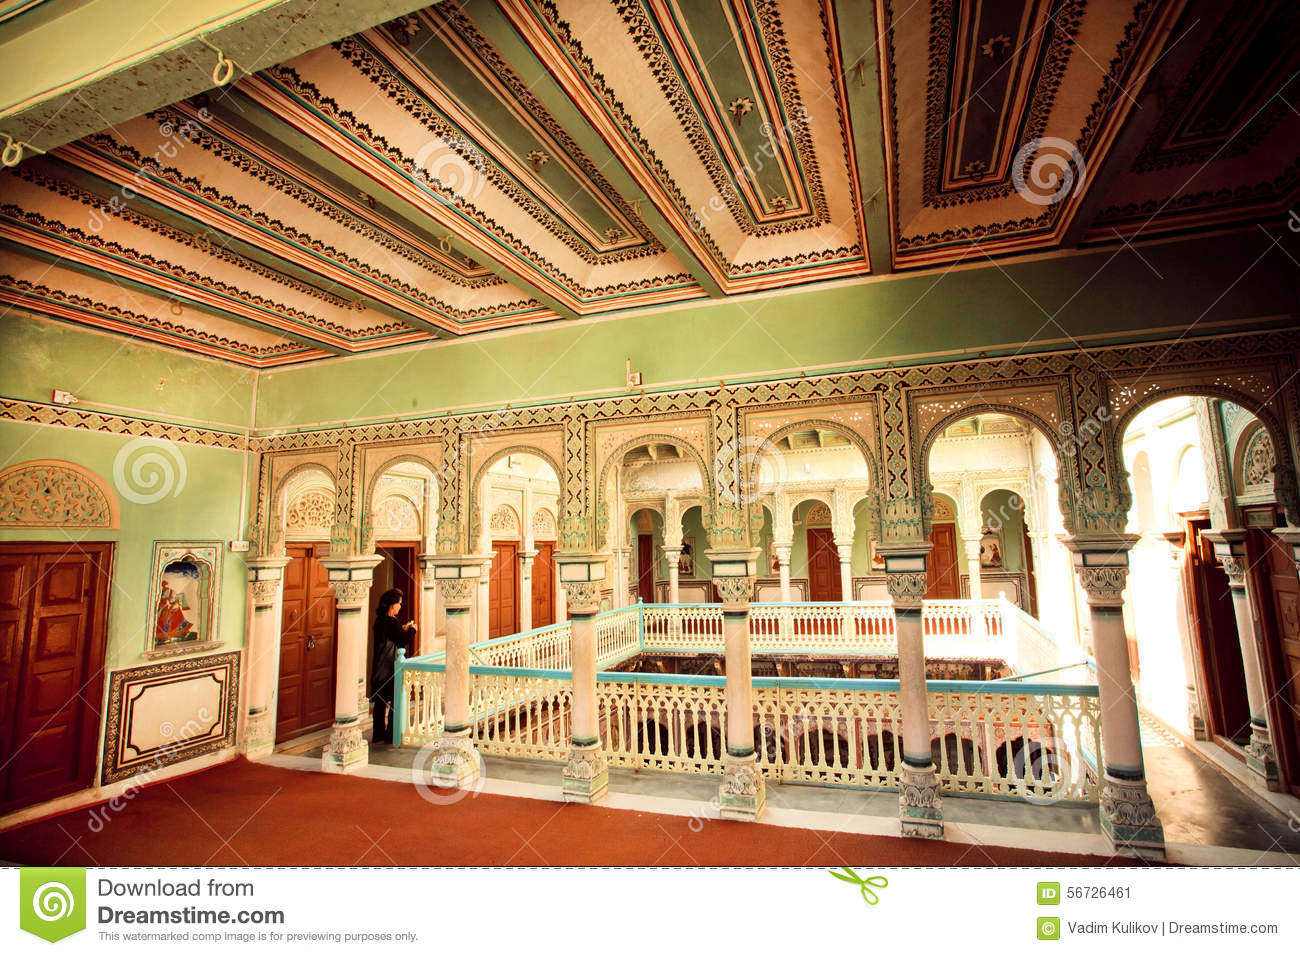 Haveli mansion house belongs to rich indian family